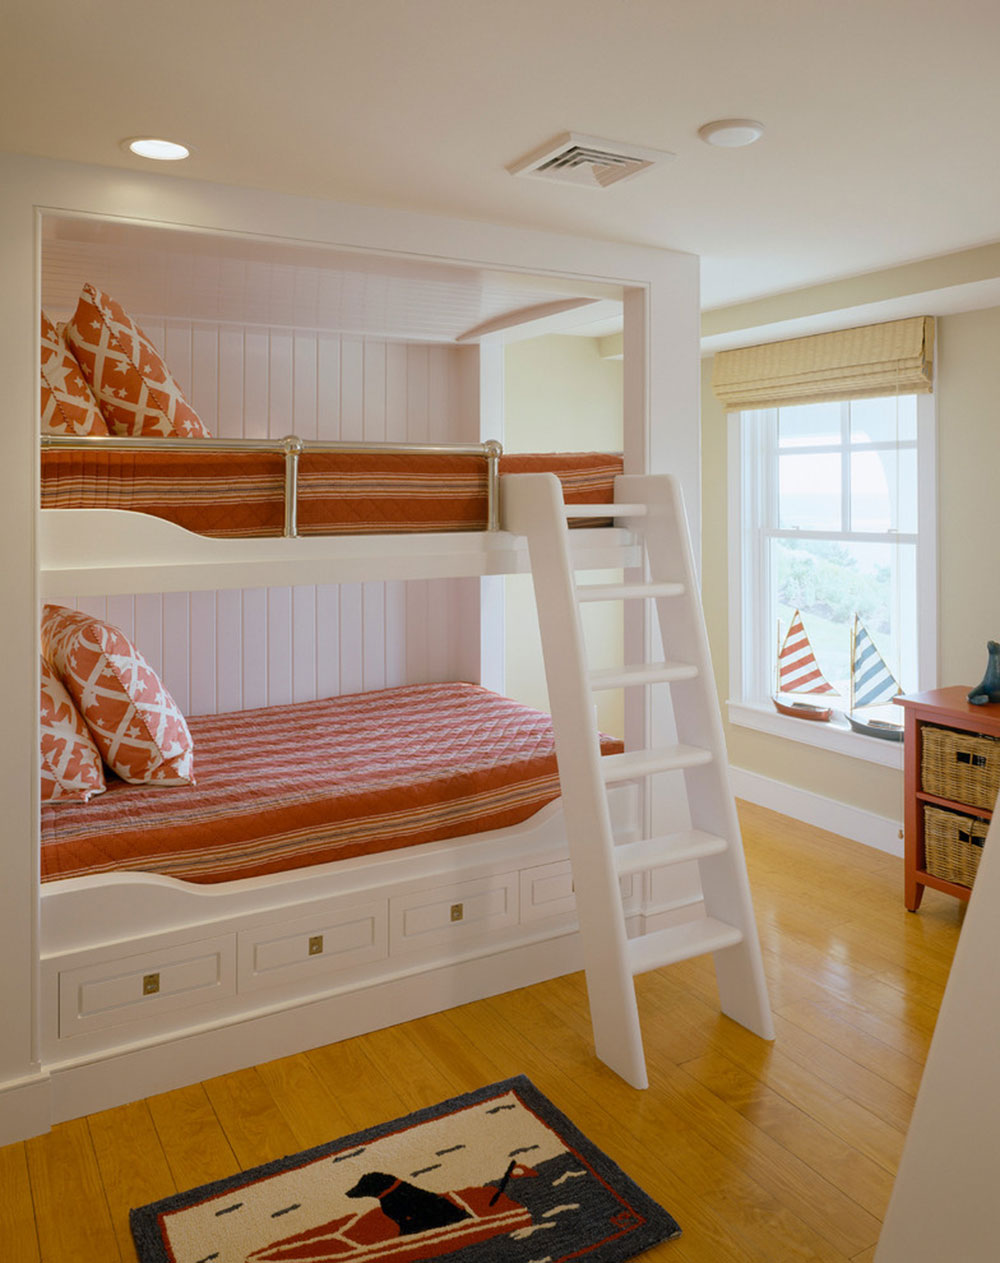 Design Bunk Bedroom Ideas bunk bed ideas for boys and girls 58 best beds designs your child will love these with